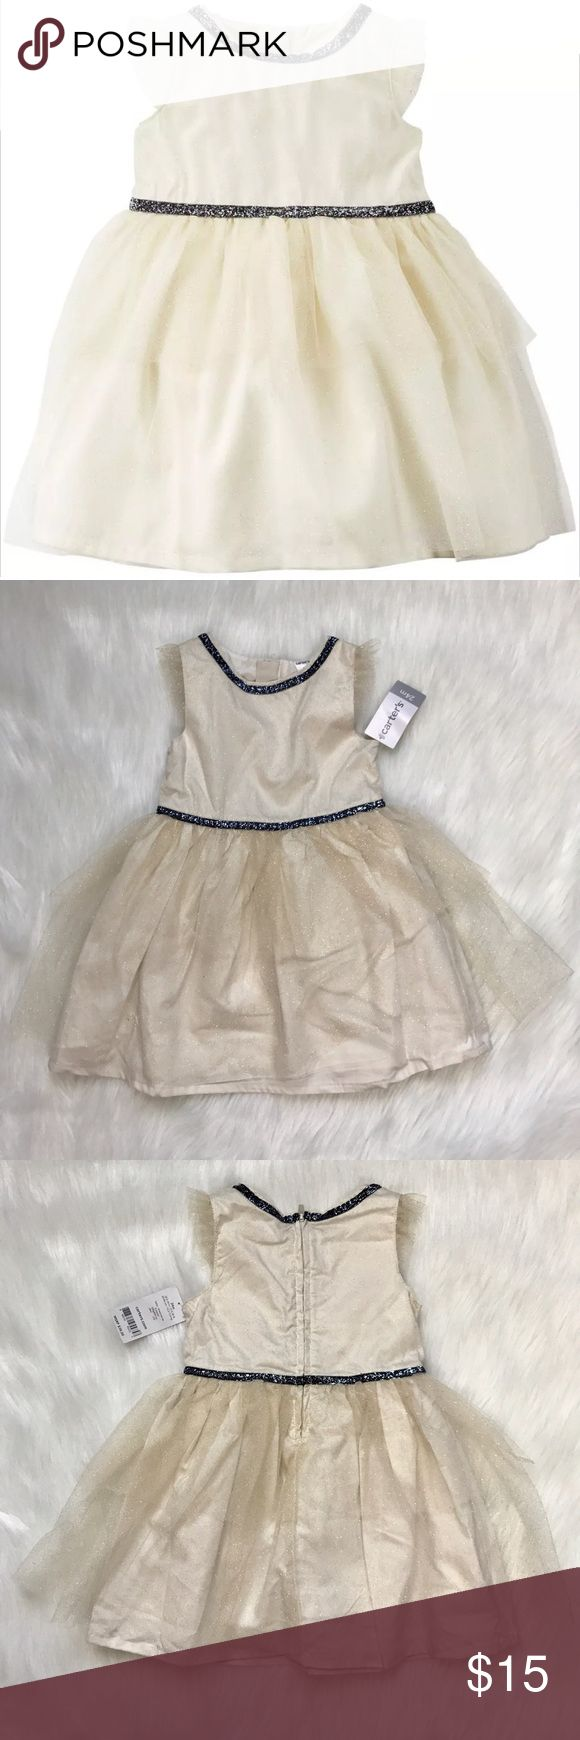 Selling this New Carter's Baby Girl Glitter Tulle Tiered Dress on Poshmark! My username is: cottonswap25. #shopmycloset #poshmark #fashion #shopping #style #forsale #Carter's #Other